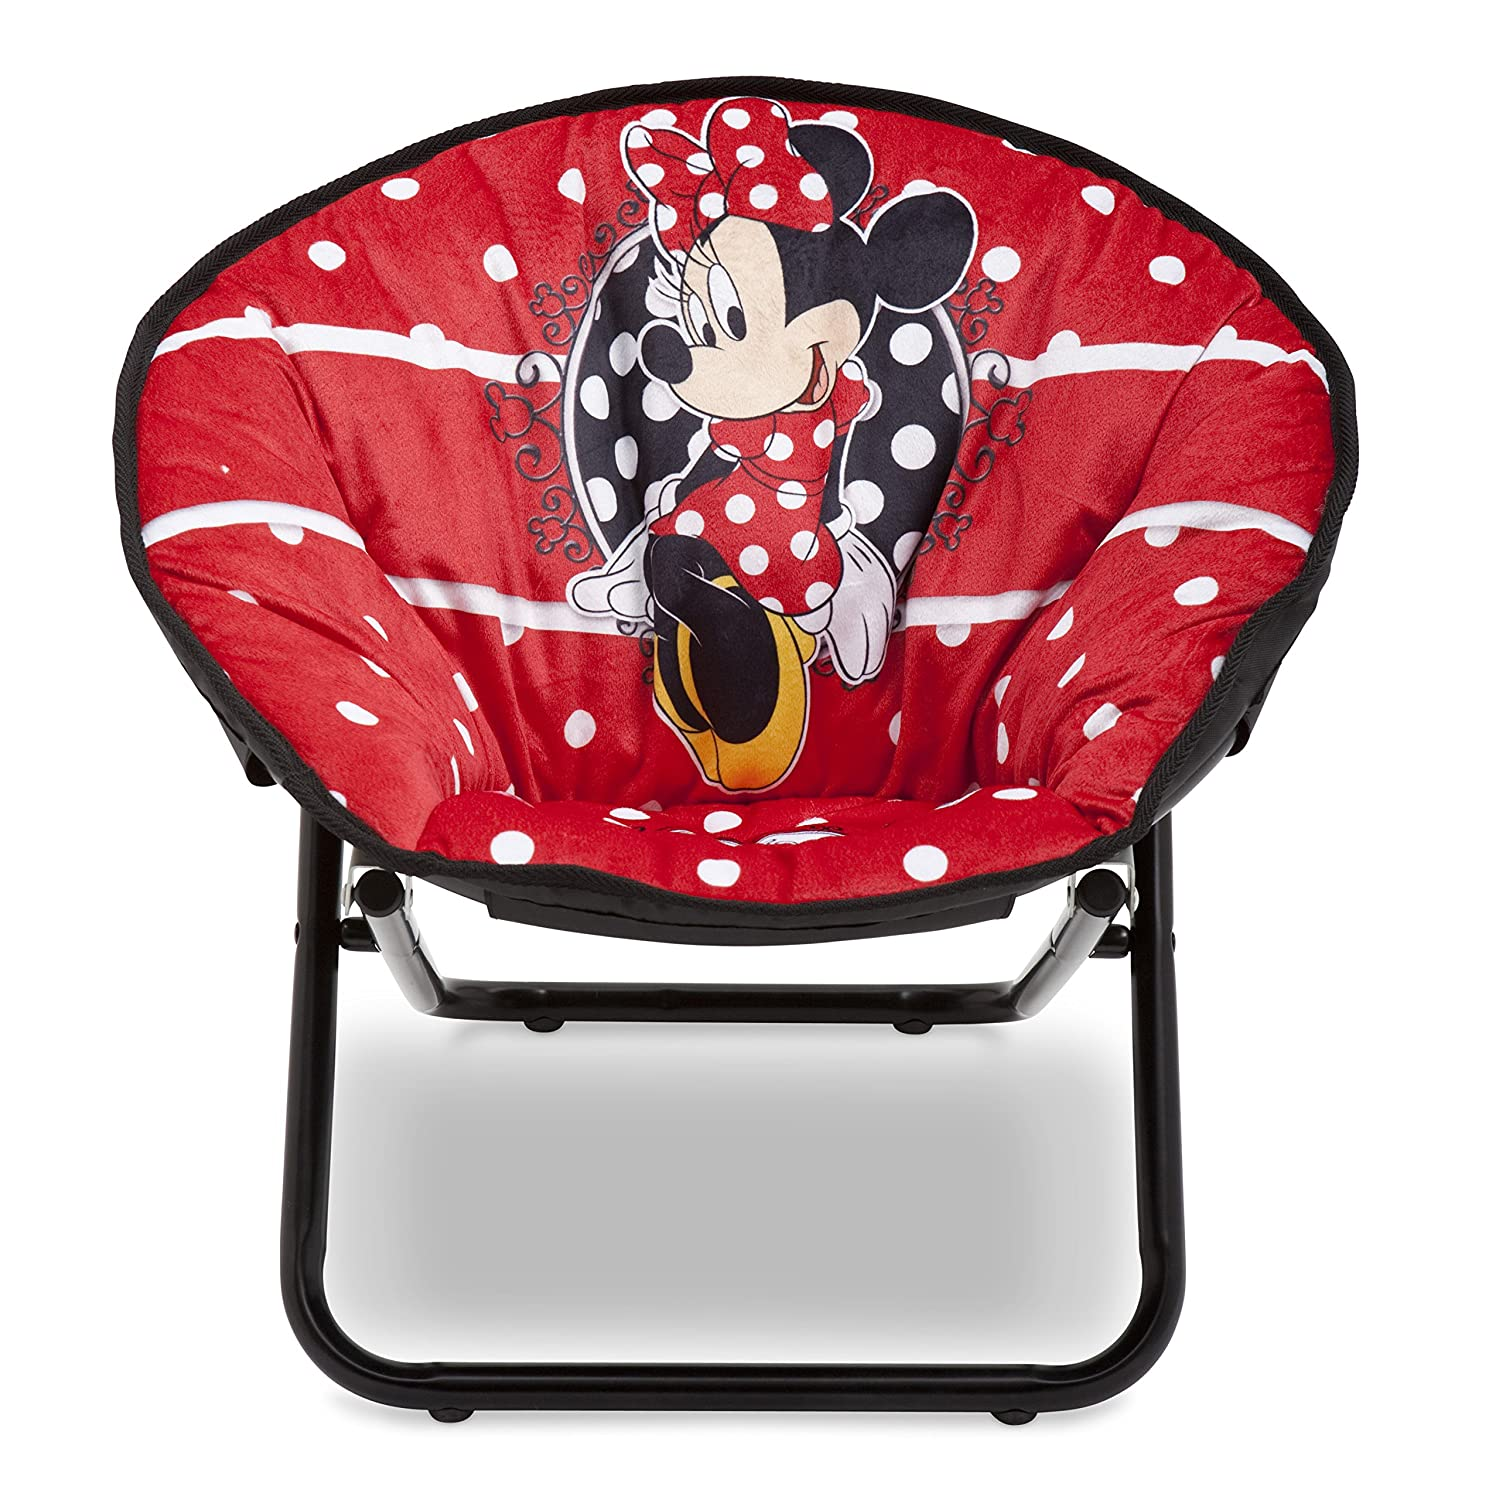 Paw Patrol Children's Saucer Chair Delta Children TC85955PW